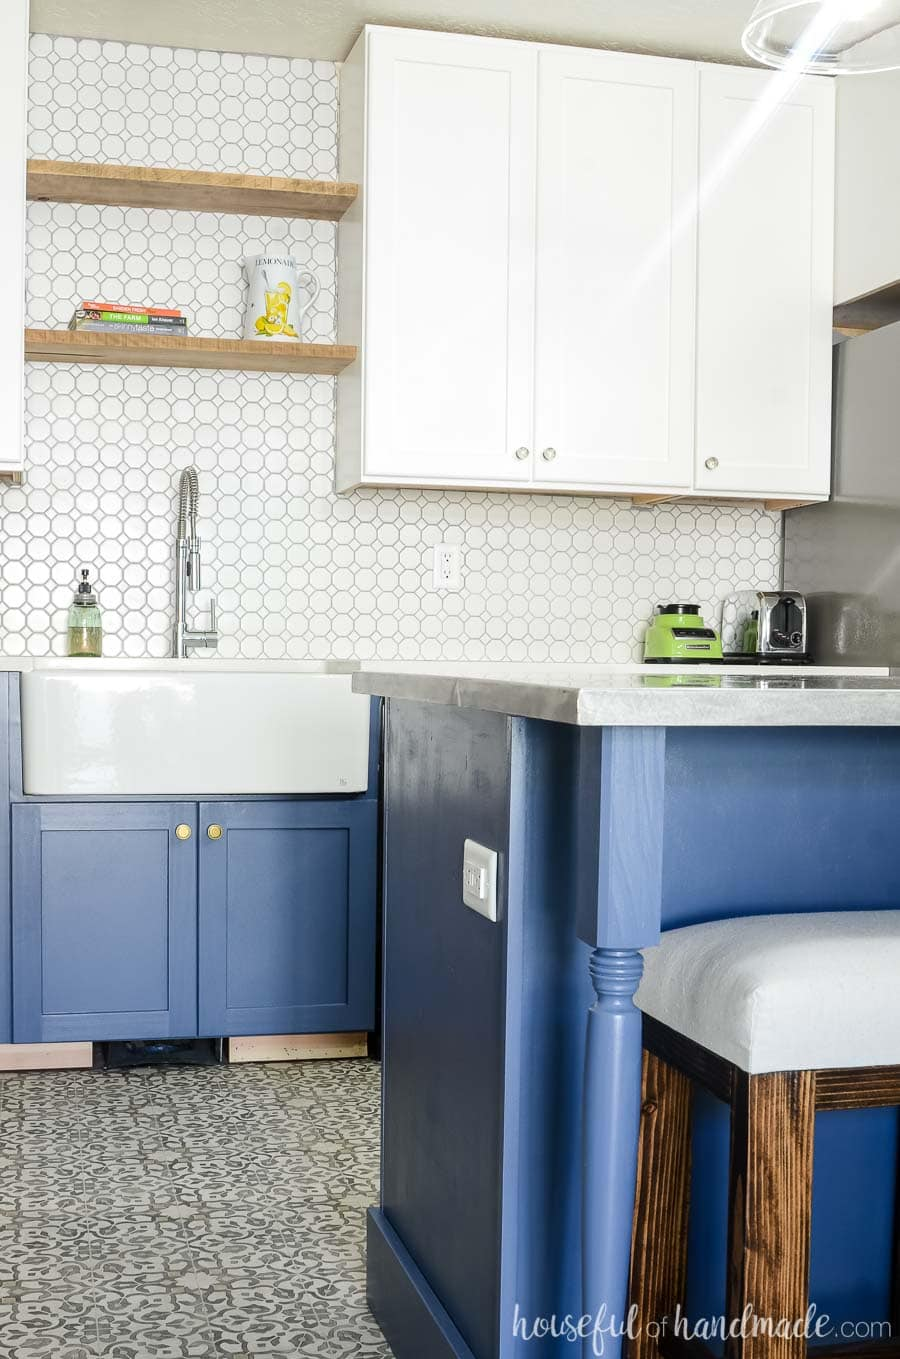 Gorgeous white and gray navy kitchen with textured white porcelain tile. Rustic floating shelves and a farmhouse sink are perfect for a budget farmhouse kitchen remodel. Housefulofhandmade.com